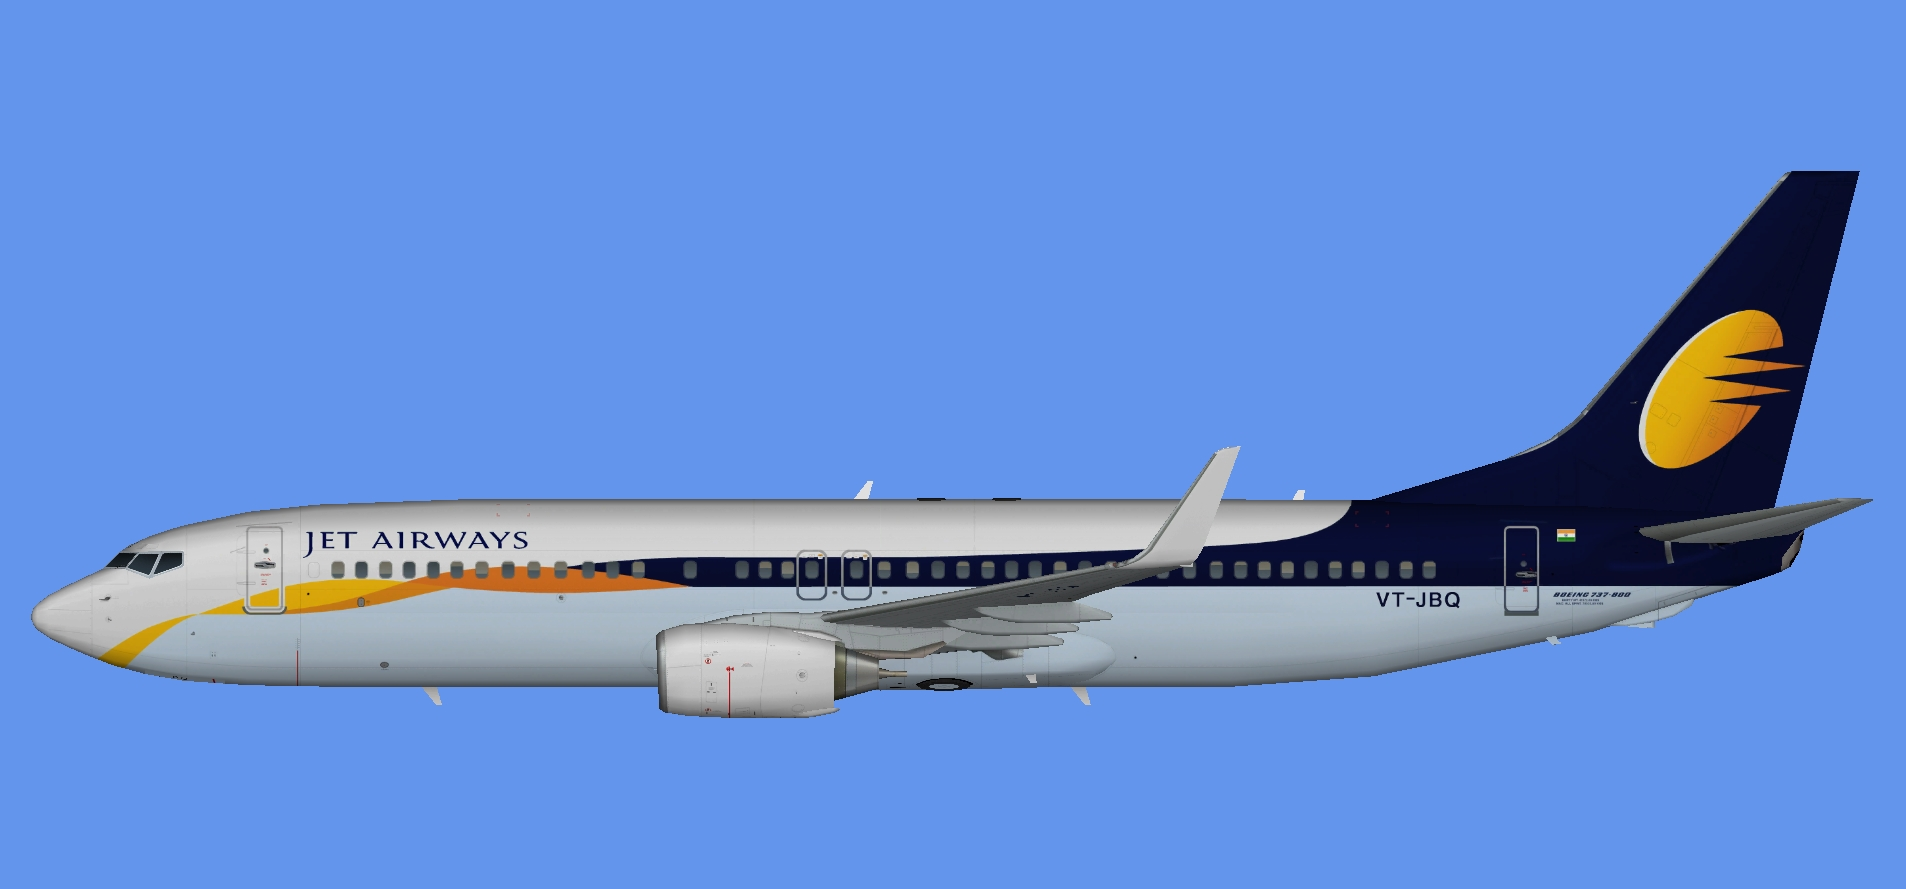 Jet Airways Boeing 737-800w